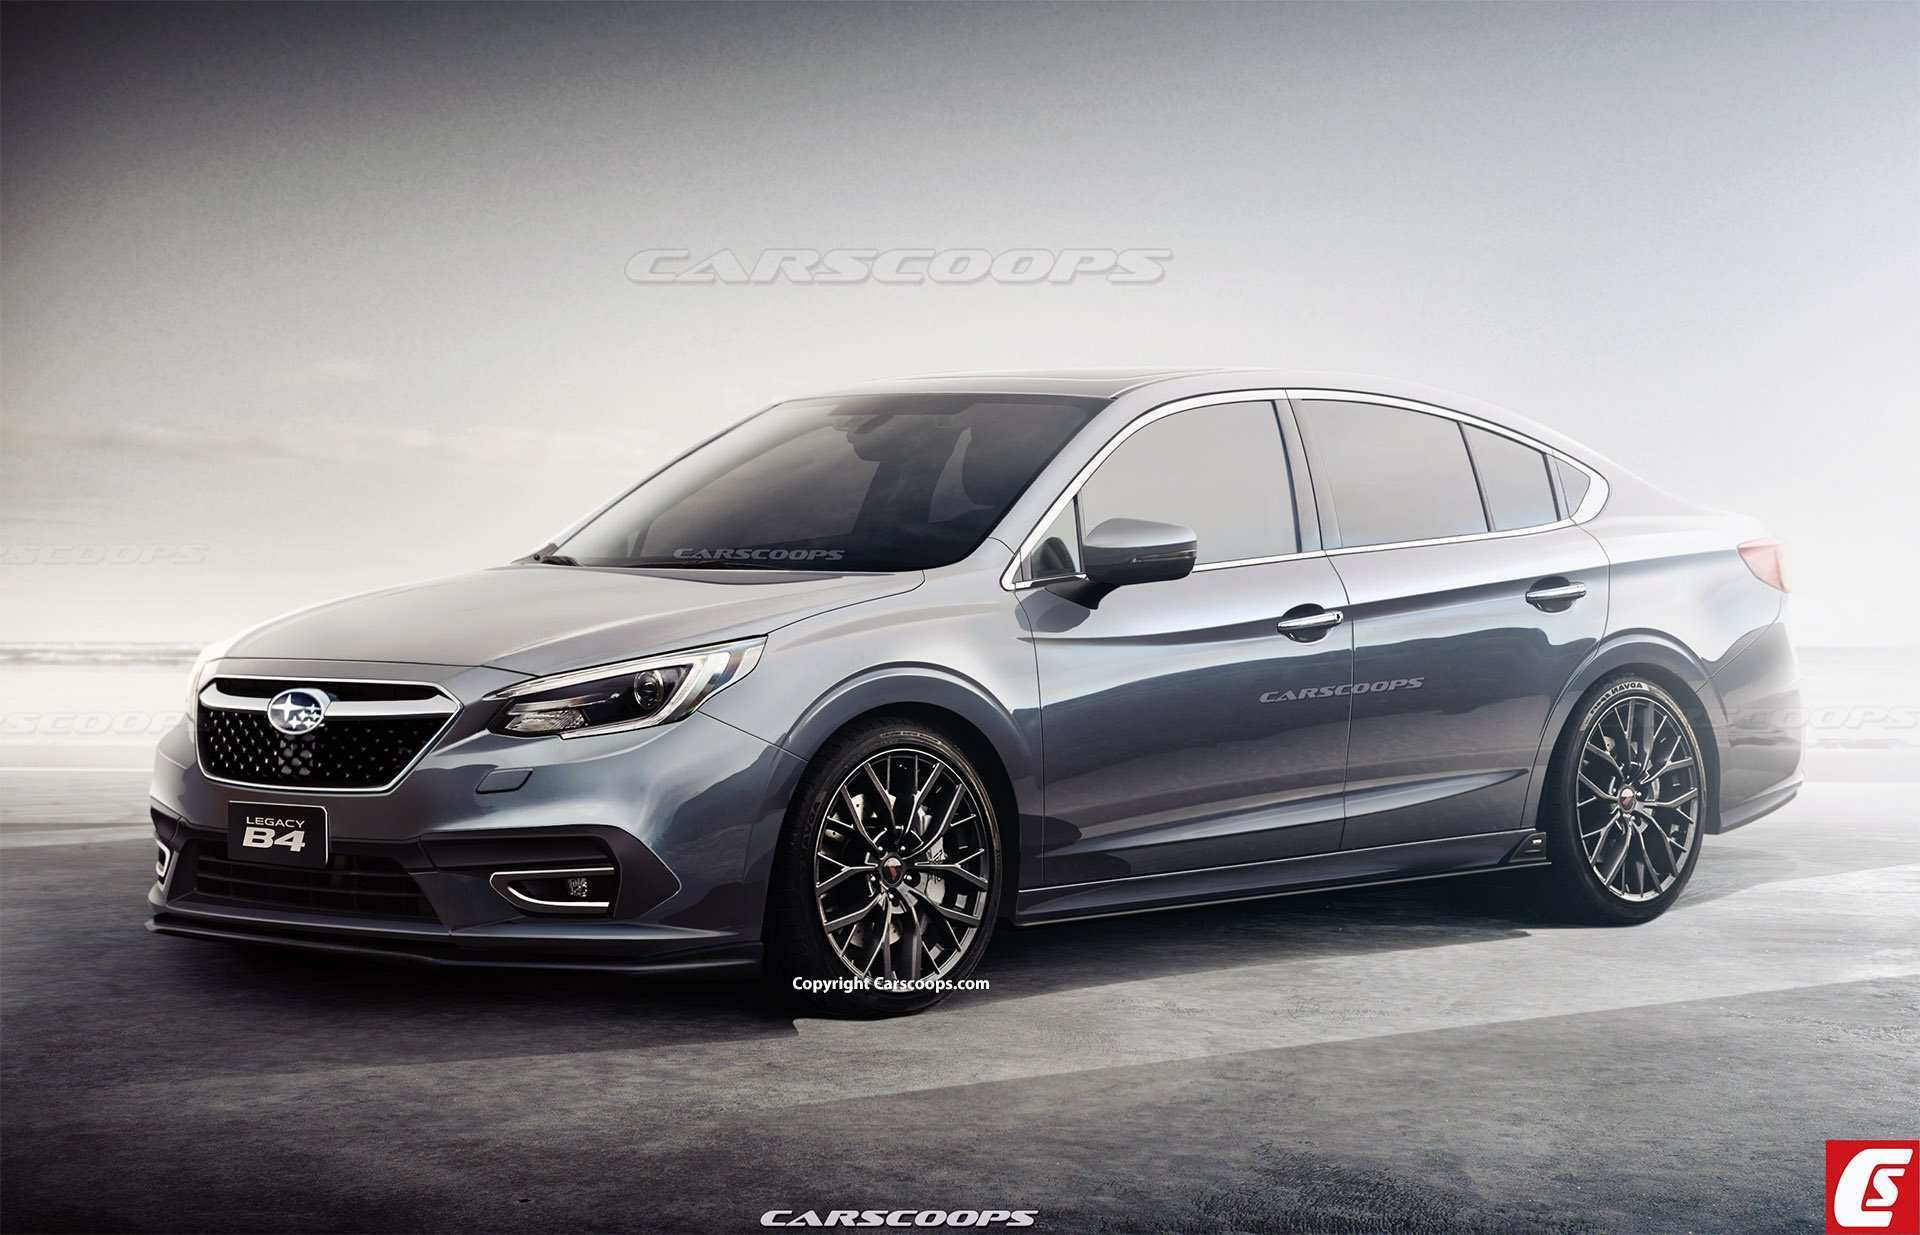 46 All New Subaru Legacy 2020 Redesign Price And Review